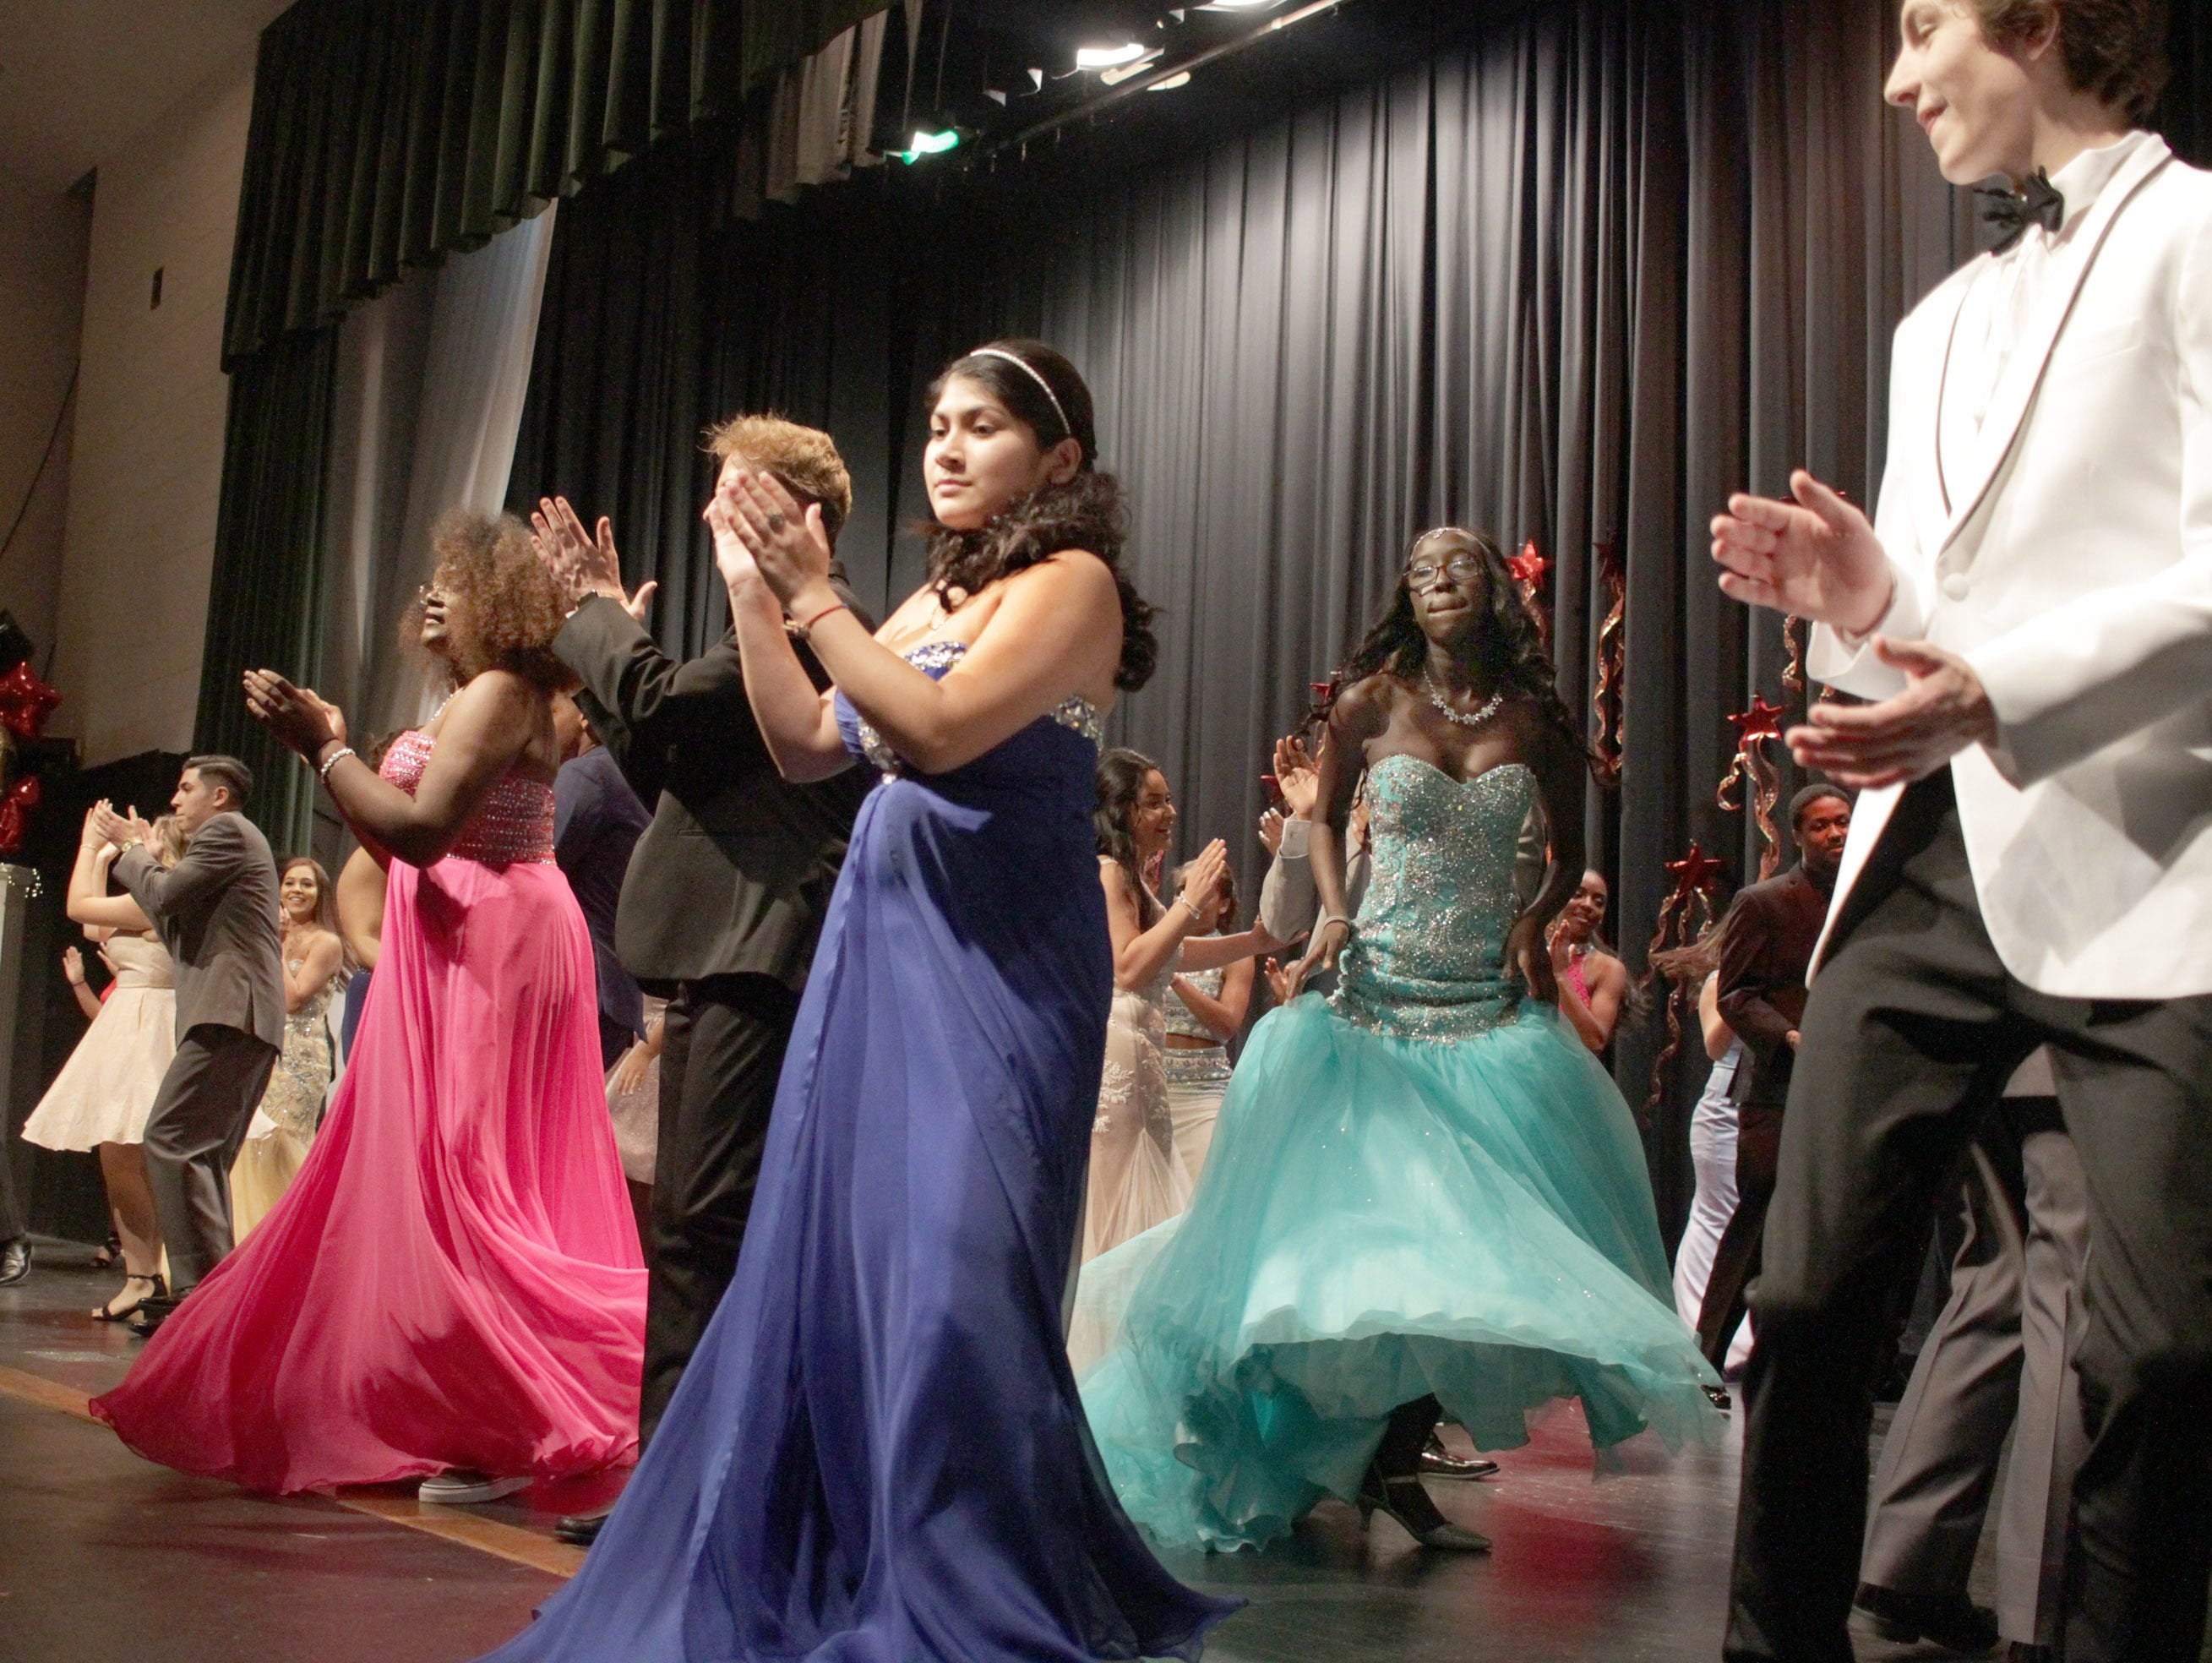 Performers applause in the finale of Gallatin High's Annual Prom Show on Saturday, February 2, 2019.